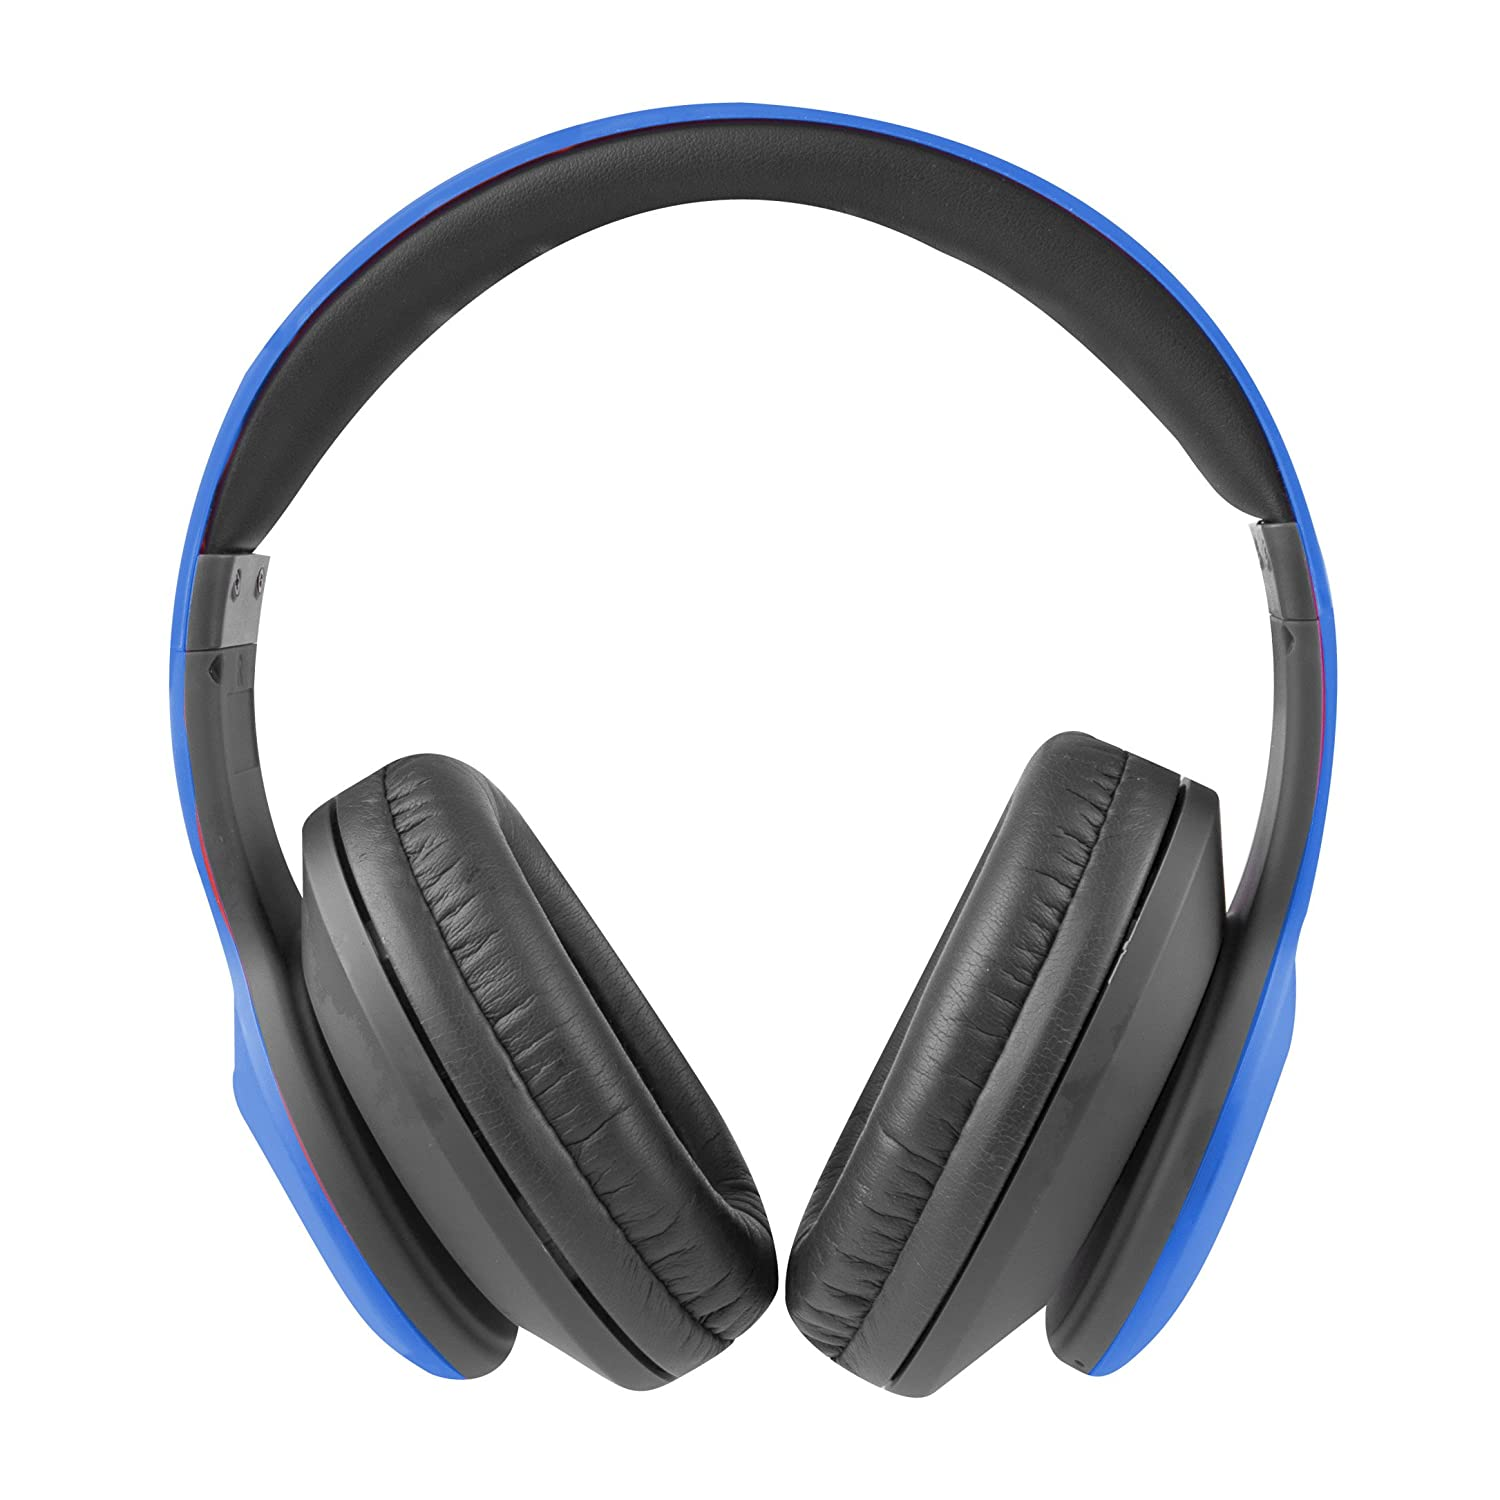 Altec Lansing MZX300-BLU Wireless Over Ear Bluetooth Headphones with Microphone, Blue